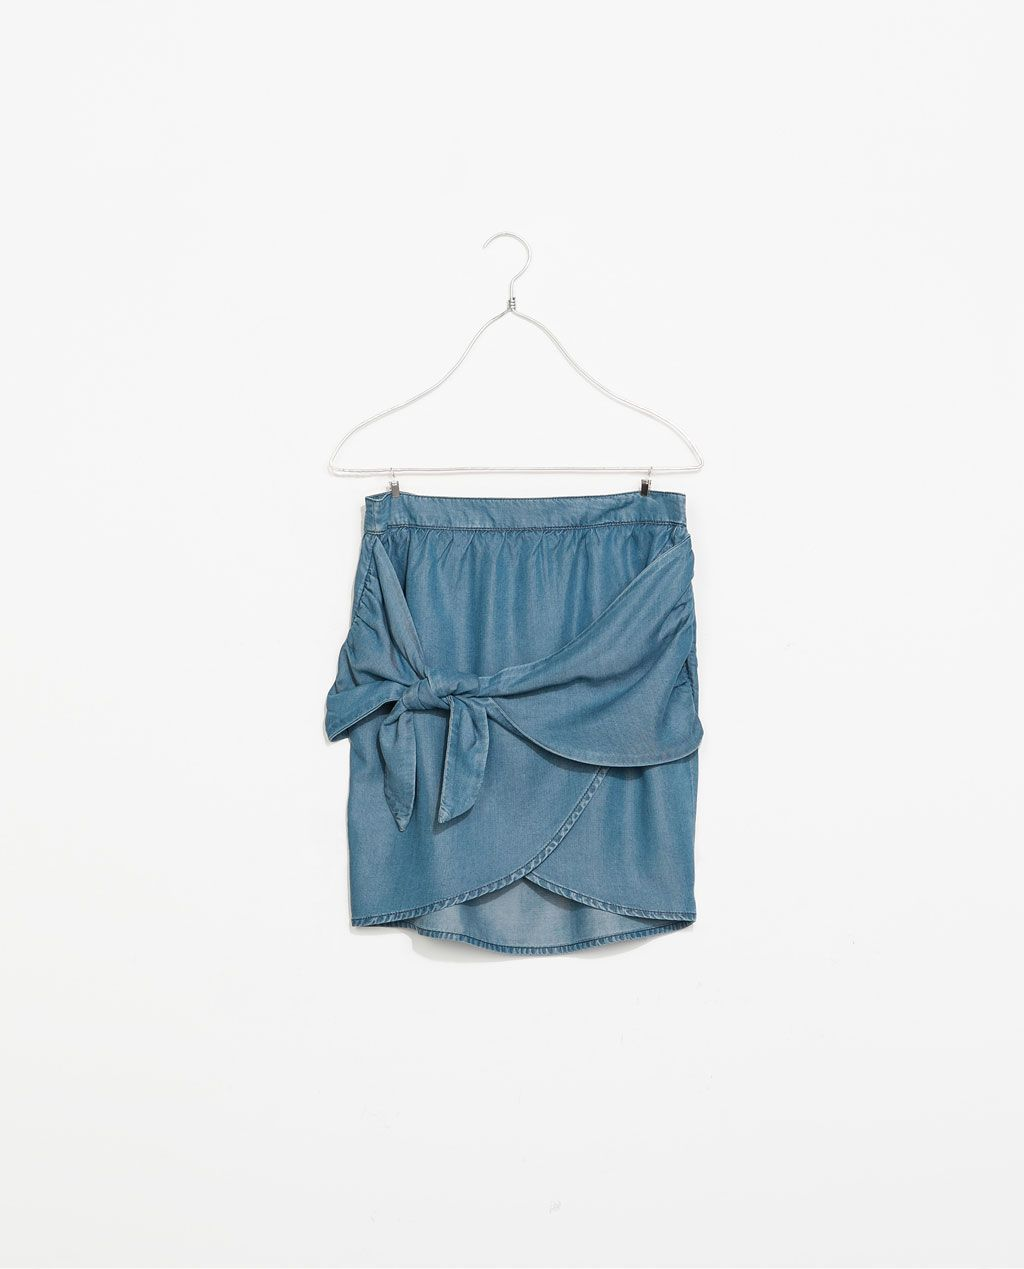 ZARA - NEW THIS WEEK - CROSSOVER SKIRT WITH BOW